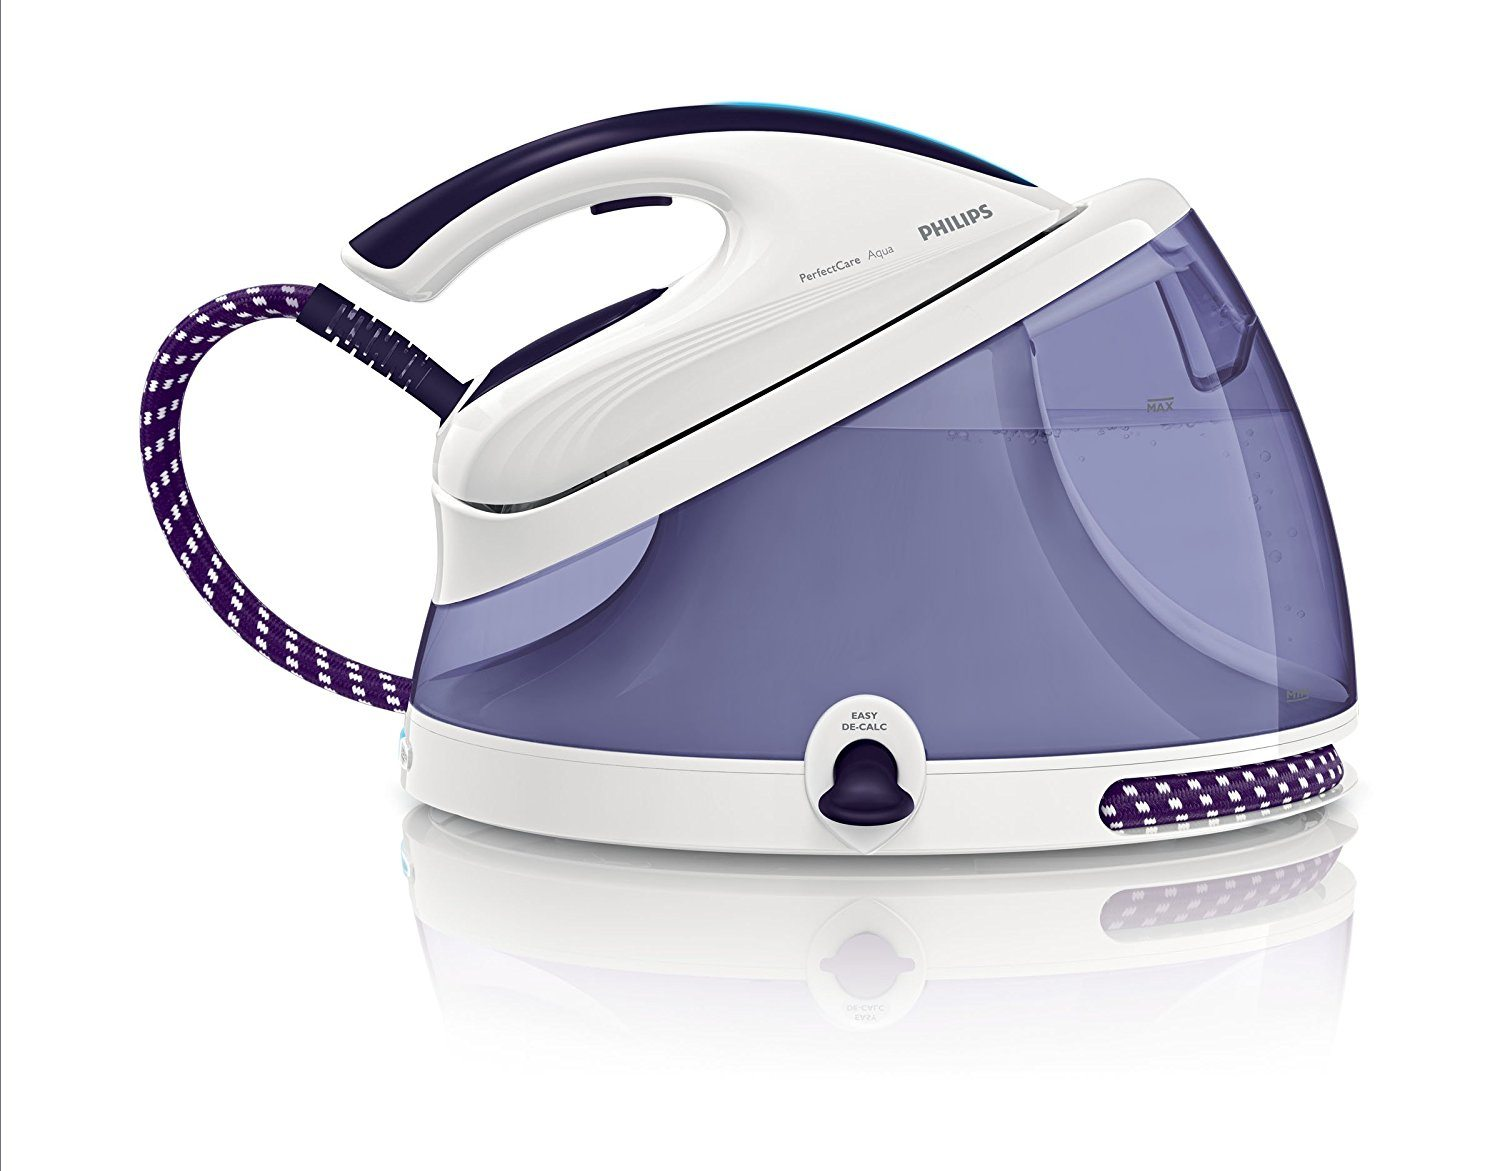 Philips GC8616/30 PerfectCare Aqua Steam Generator Iron